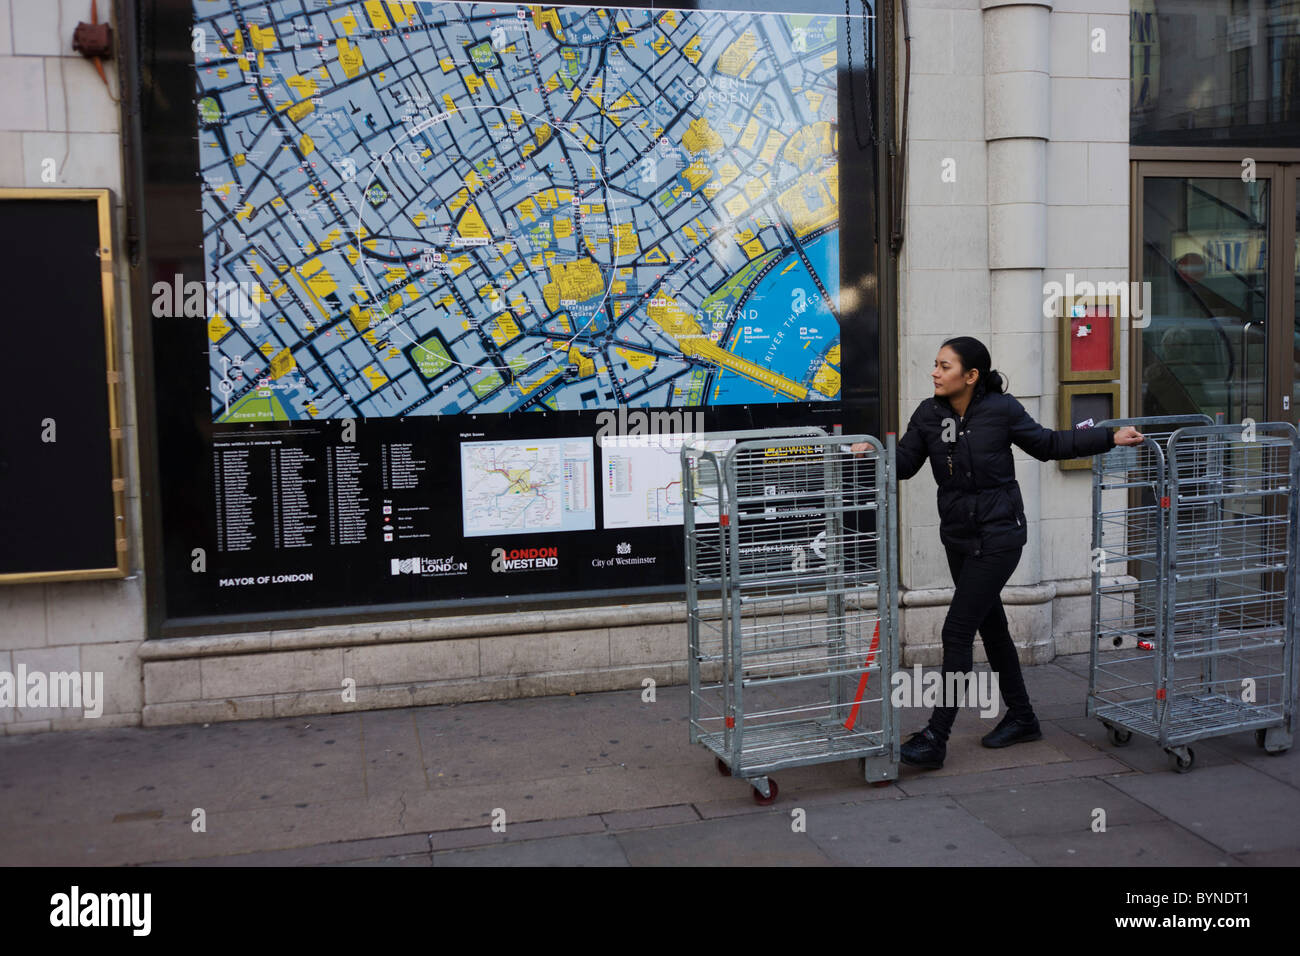 Woman walks two retail merchandise cages near a street map of London's West End. - Stock Image